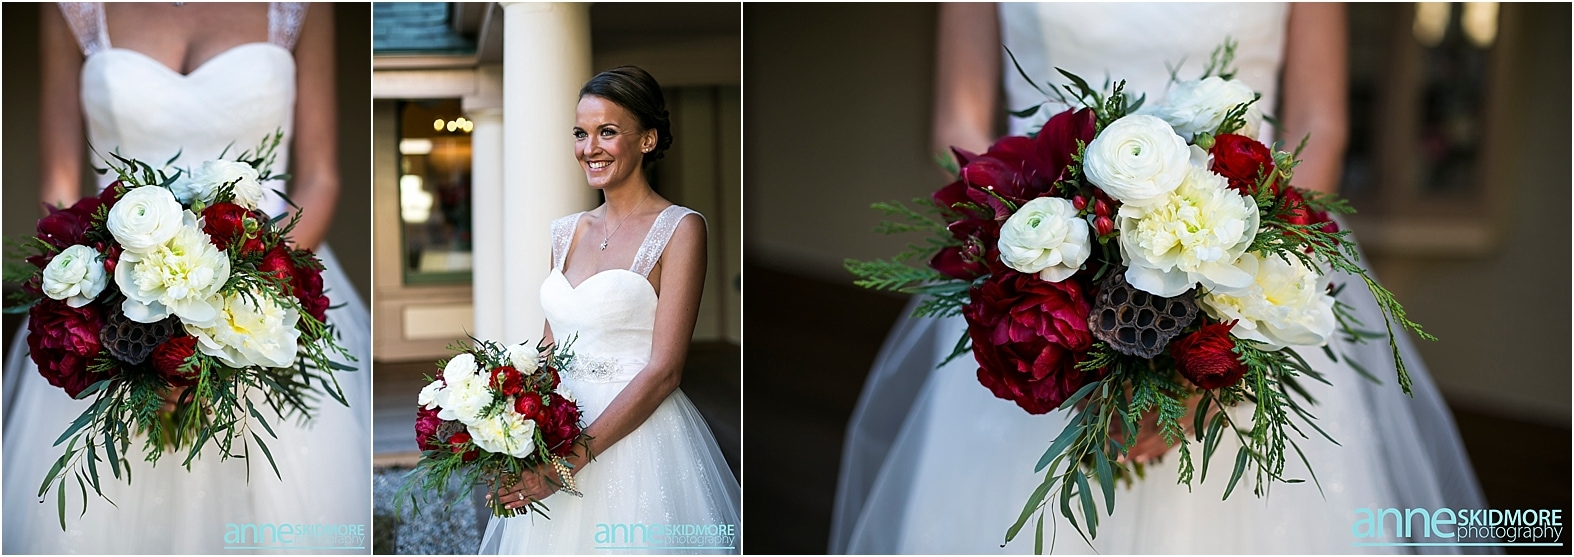 Wentworth_Inn_Wedding_018